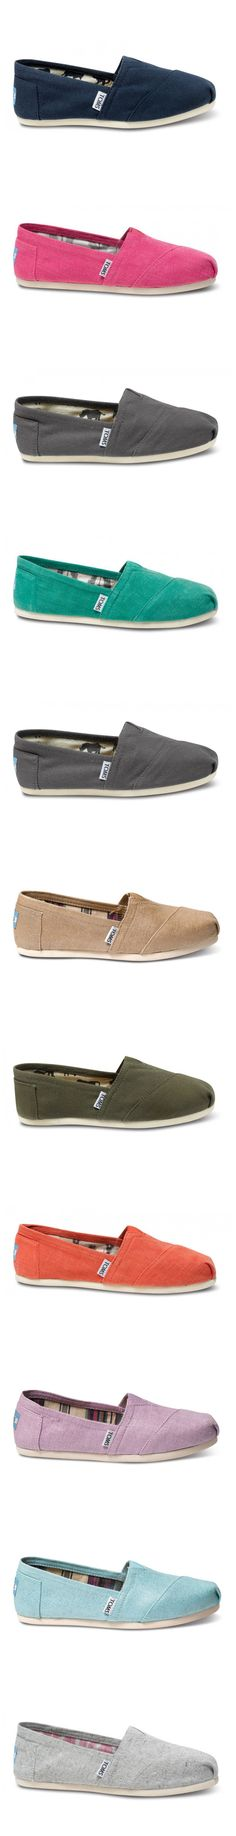 Toms Shoes Outlet! $19.99 OMG!! Holy cow, I'm gonna love this site #Toms shoes #shoes #fashion